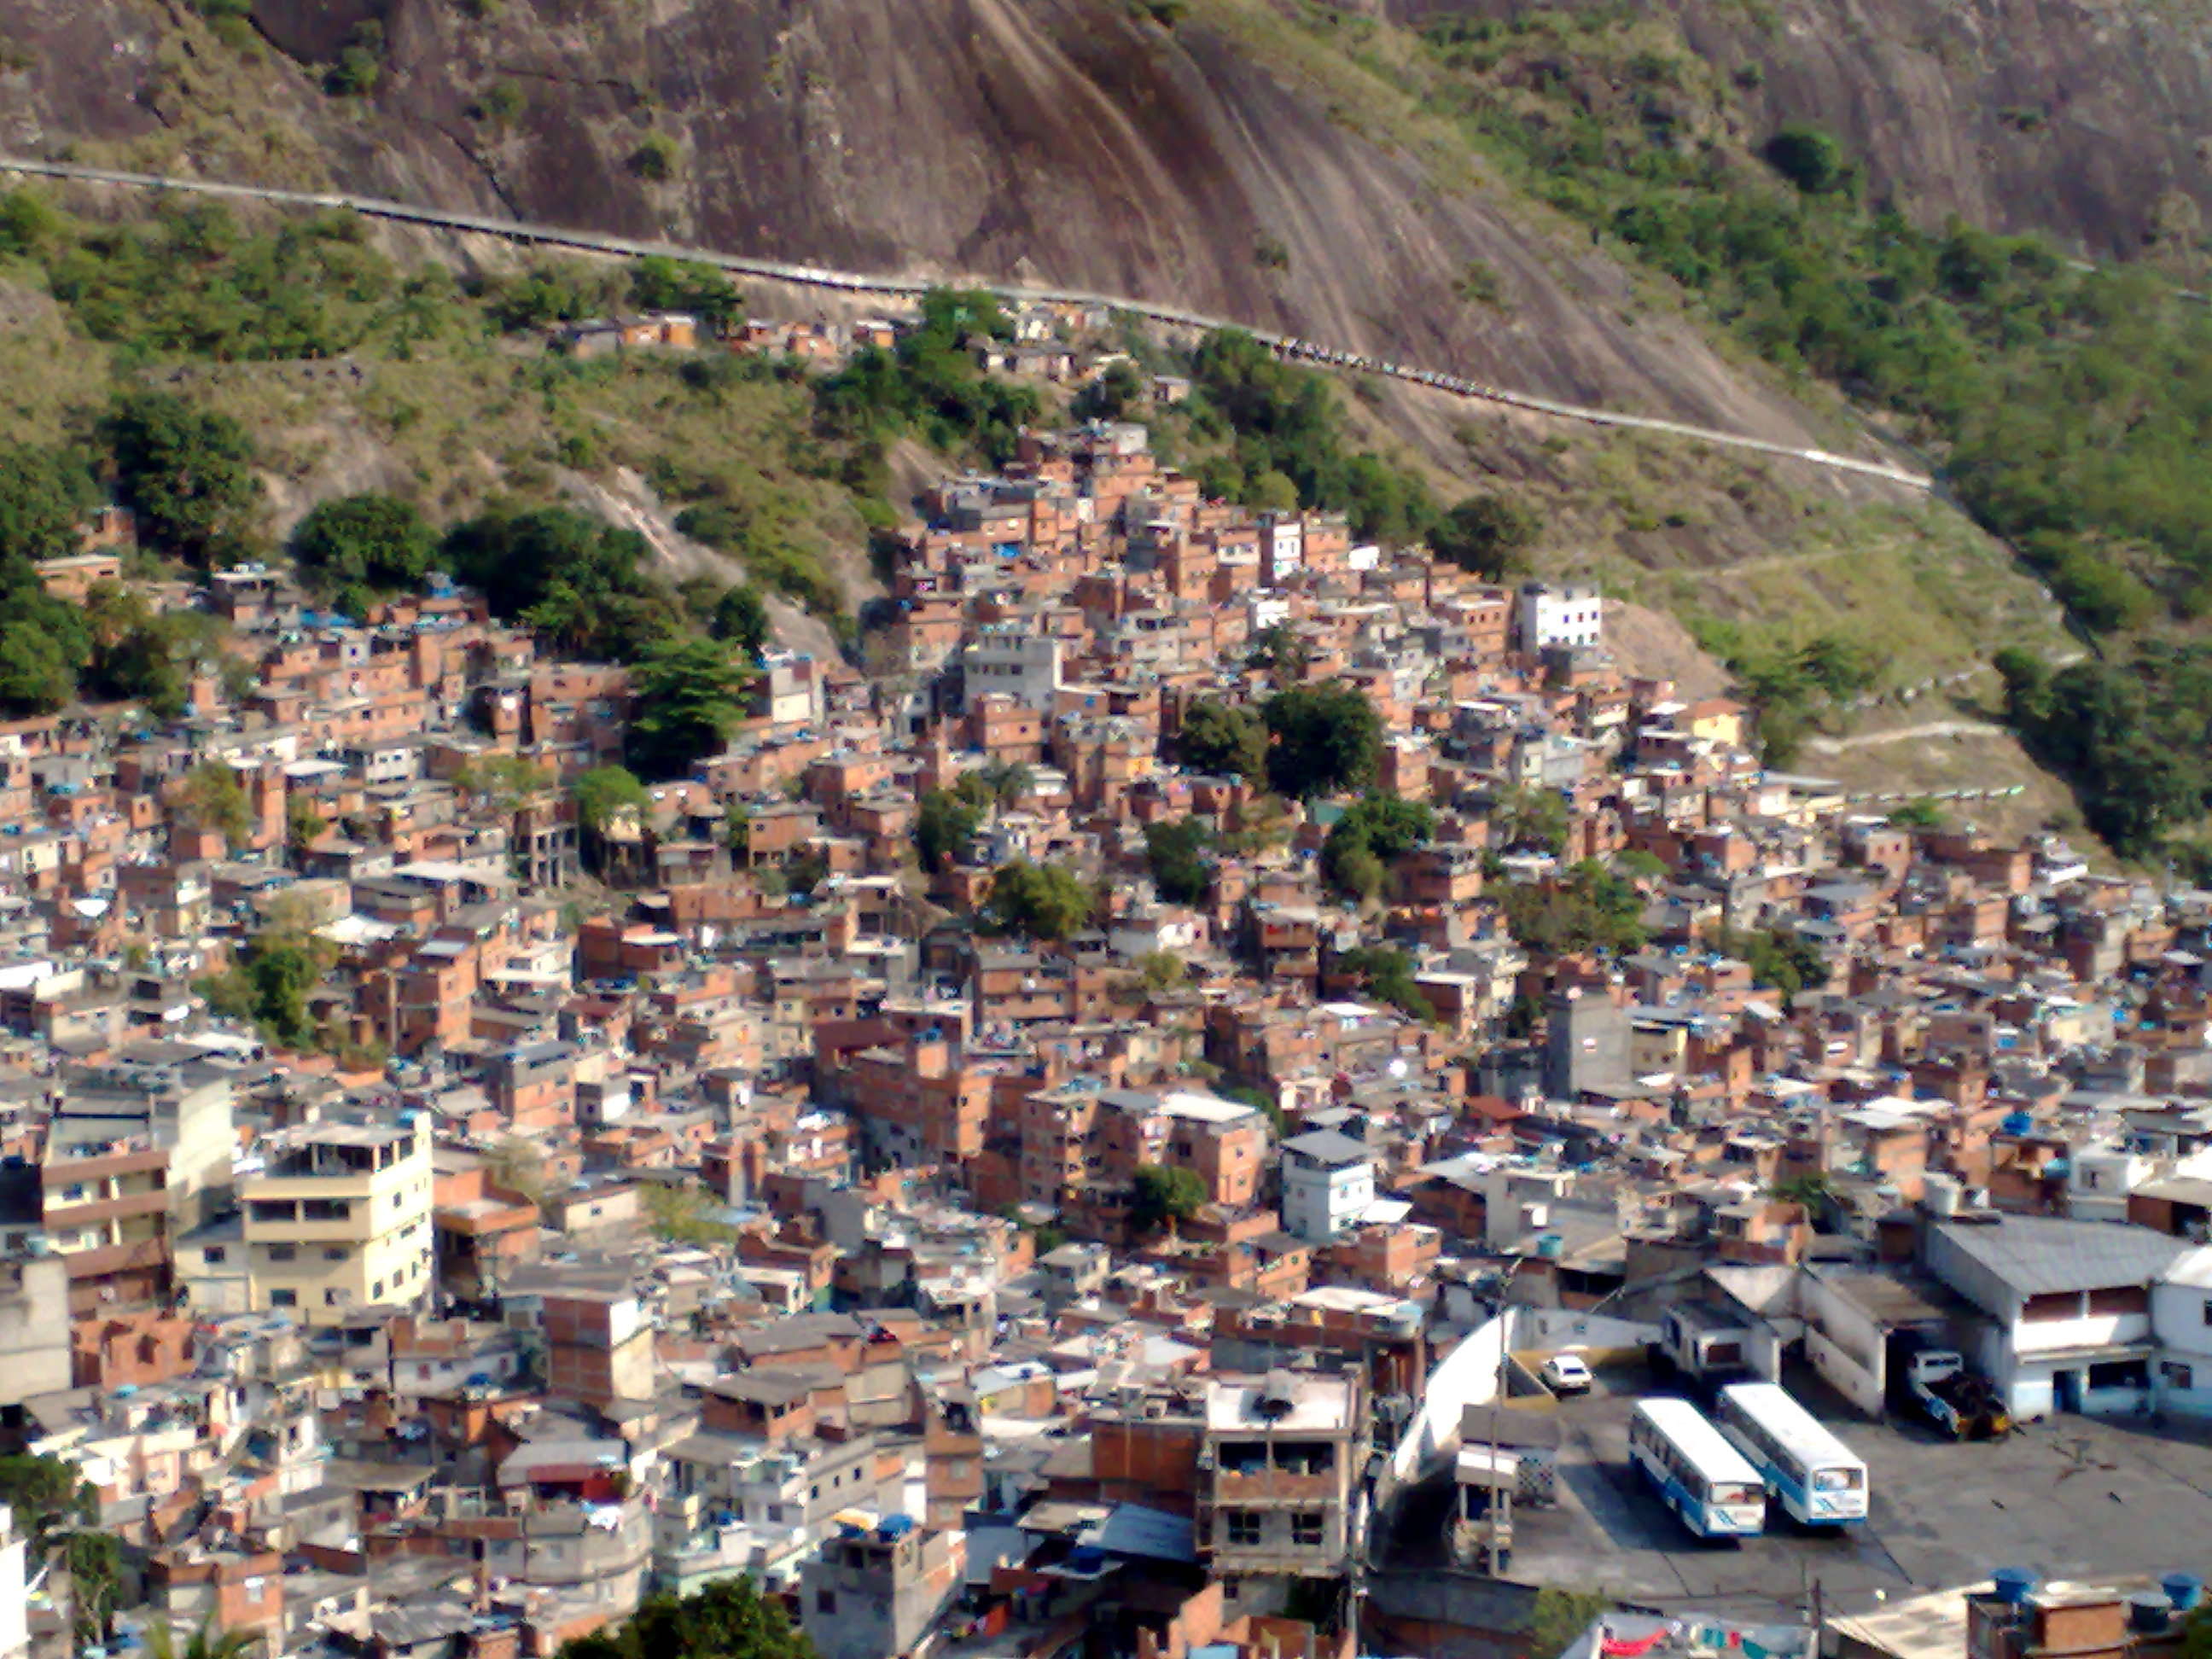 http://upload.wikimedia.org/wikipedia/commons/b/b9/Rocinha_Favela.jpg